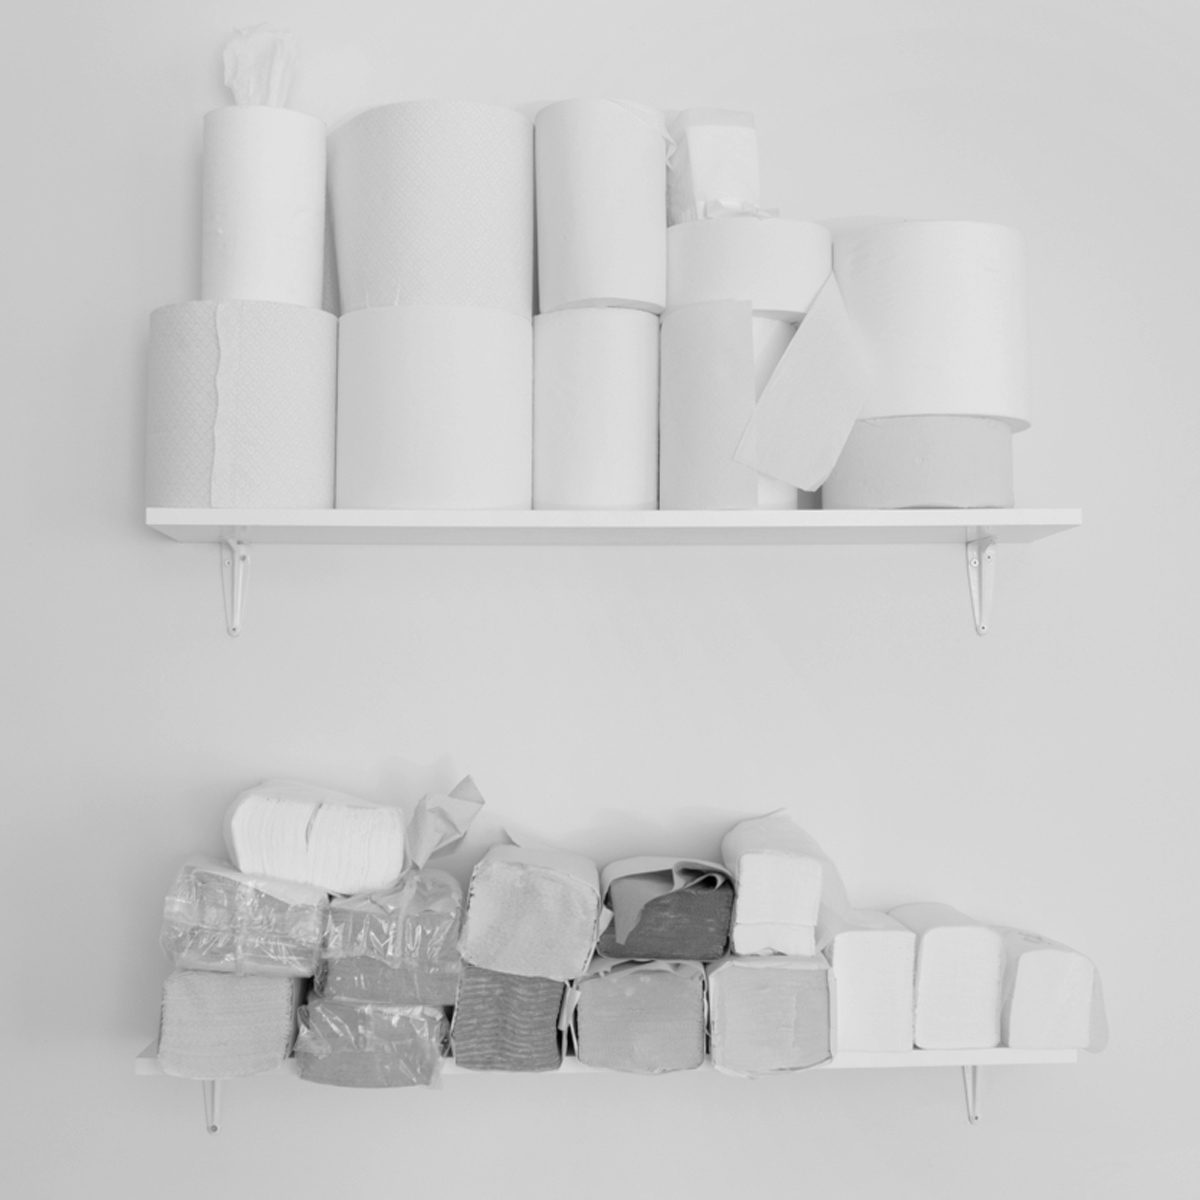 toilet paper towels shelf